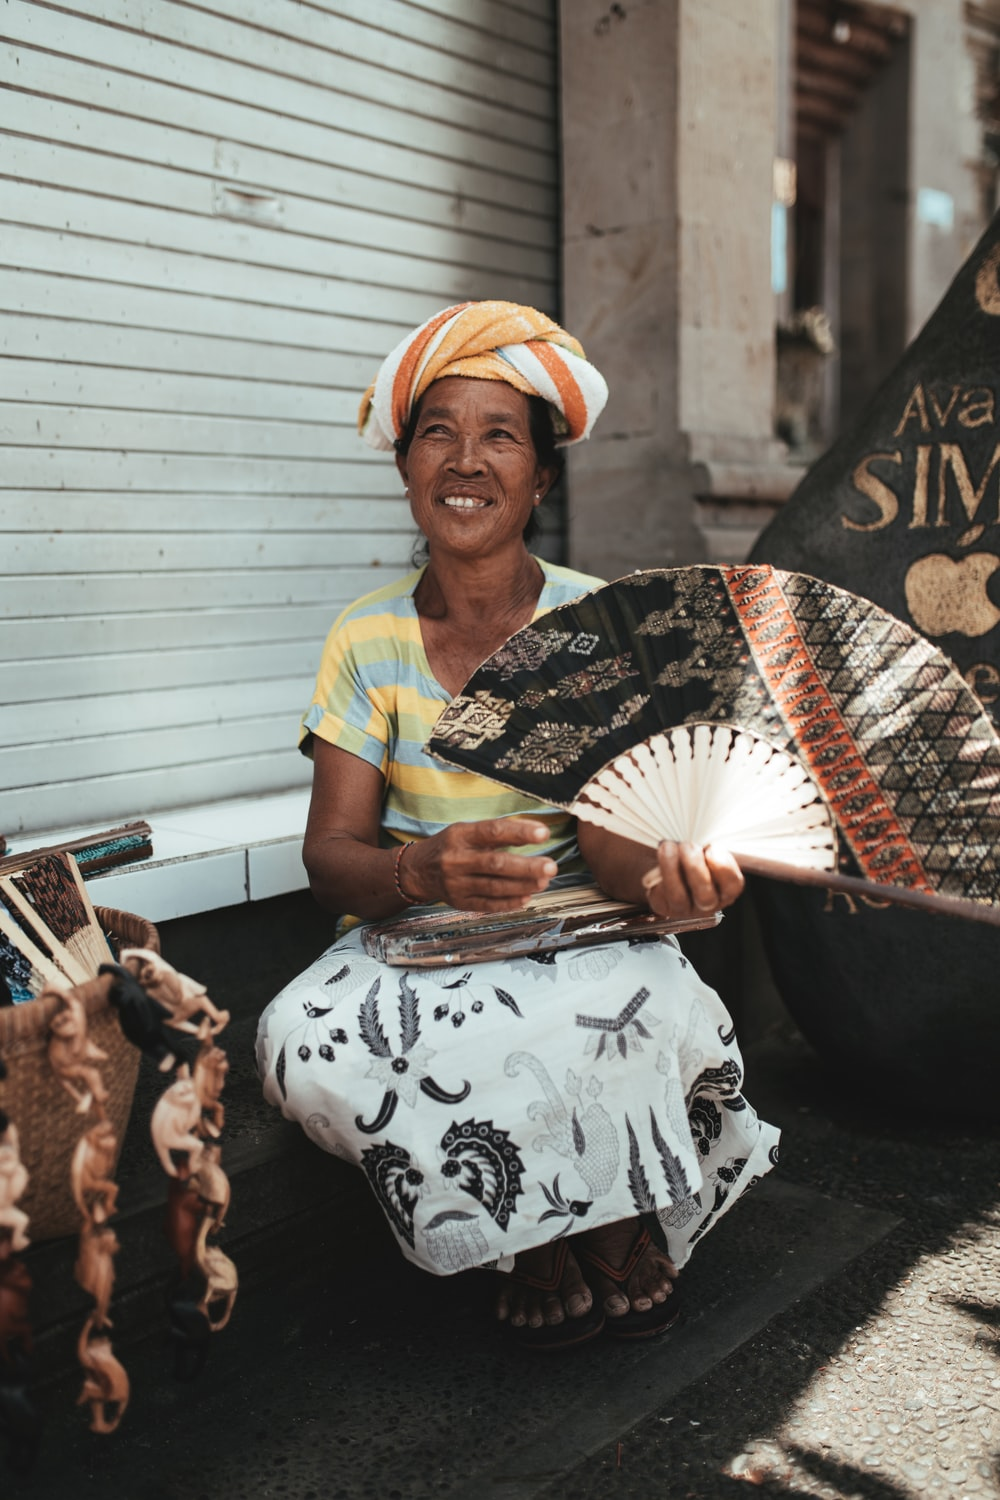 woman in yellow and black shirt holding white and black hand fan